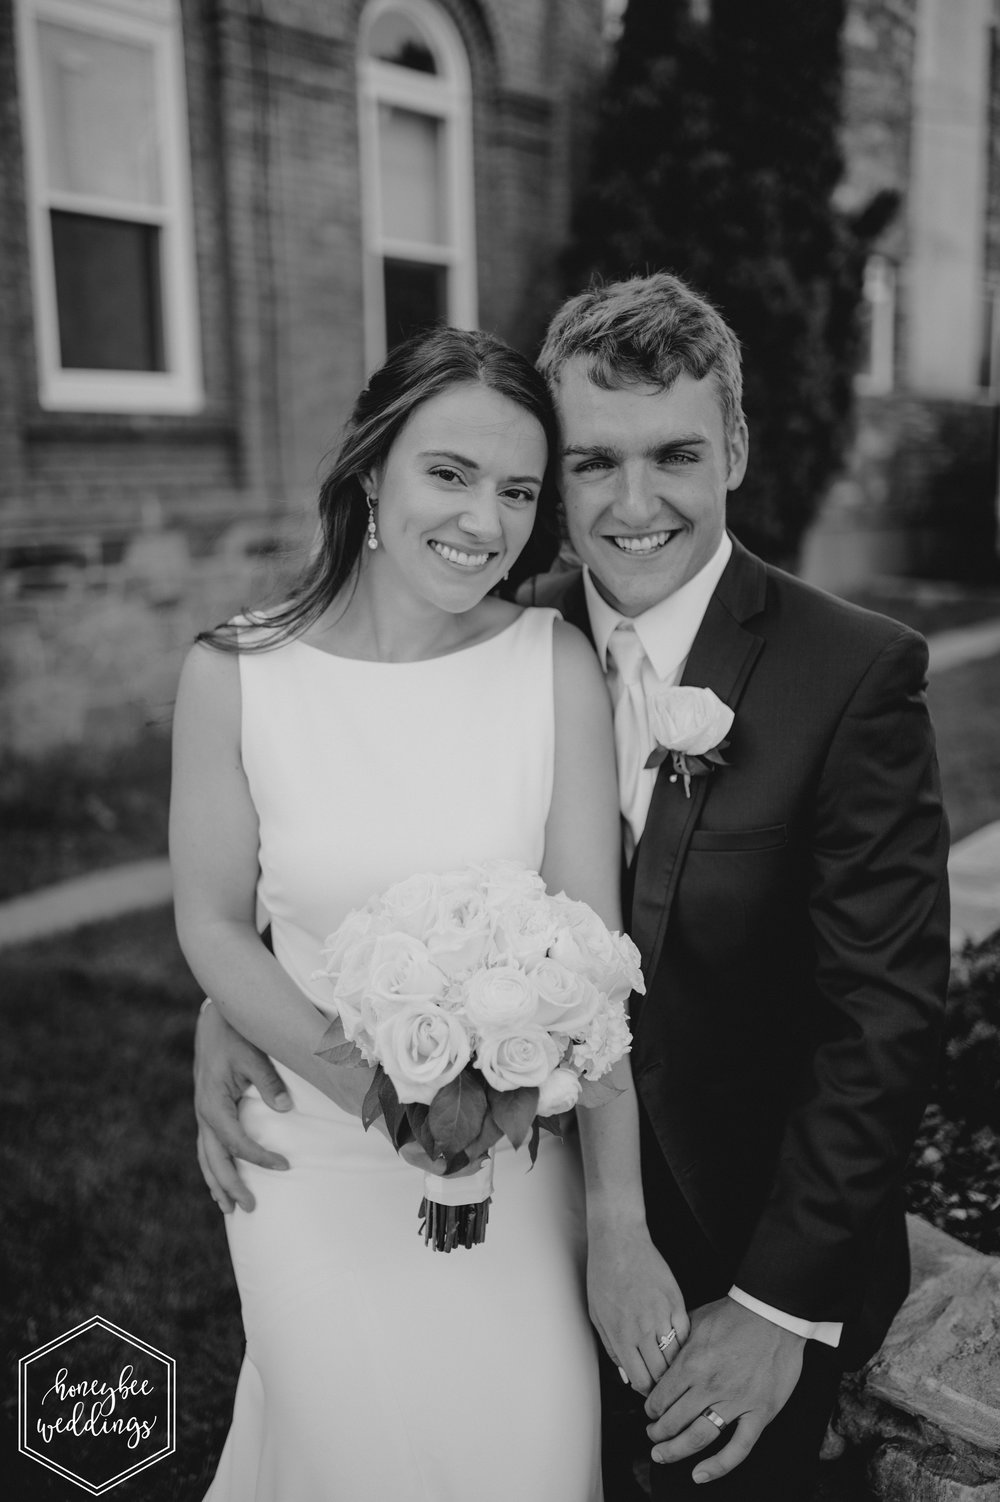 201 Montana Wedding Photographer_St. Francis Wedding_Tifani Zanto + Ryan Burke -6840.jpg